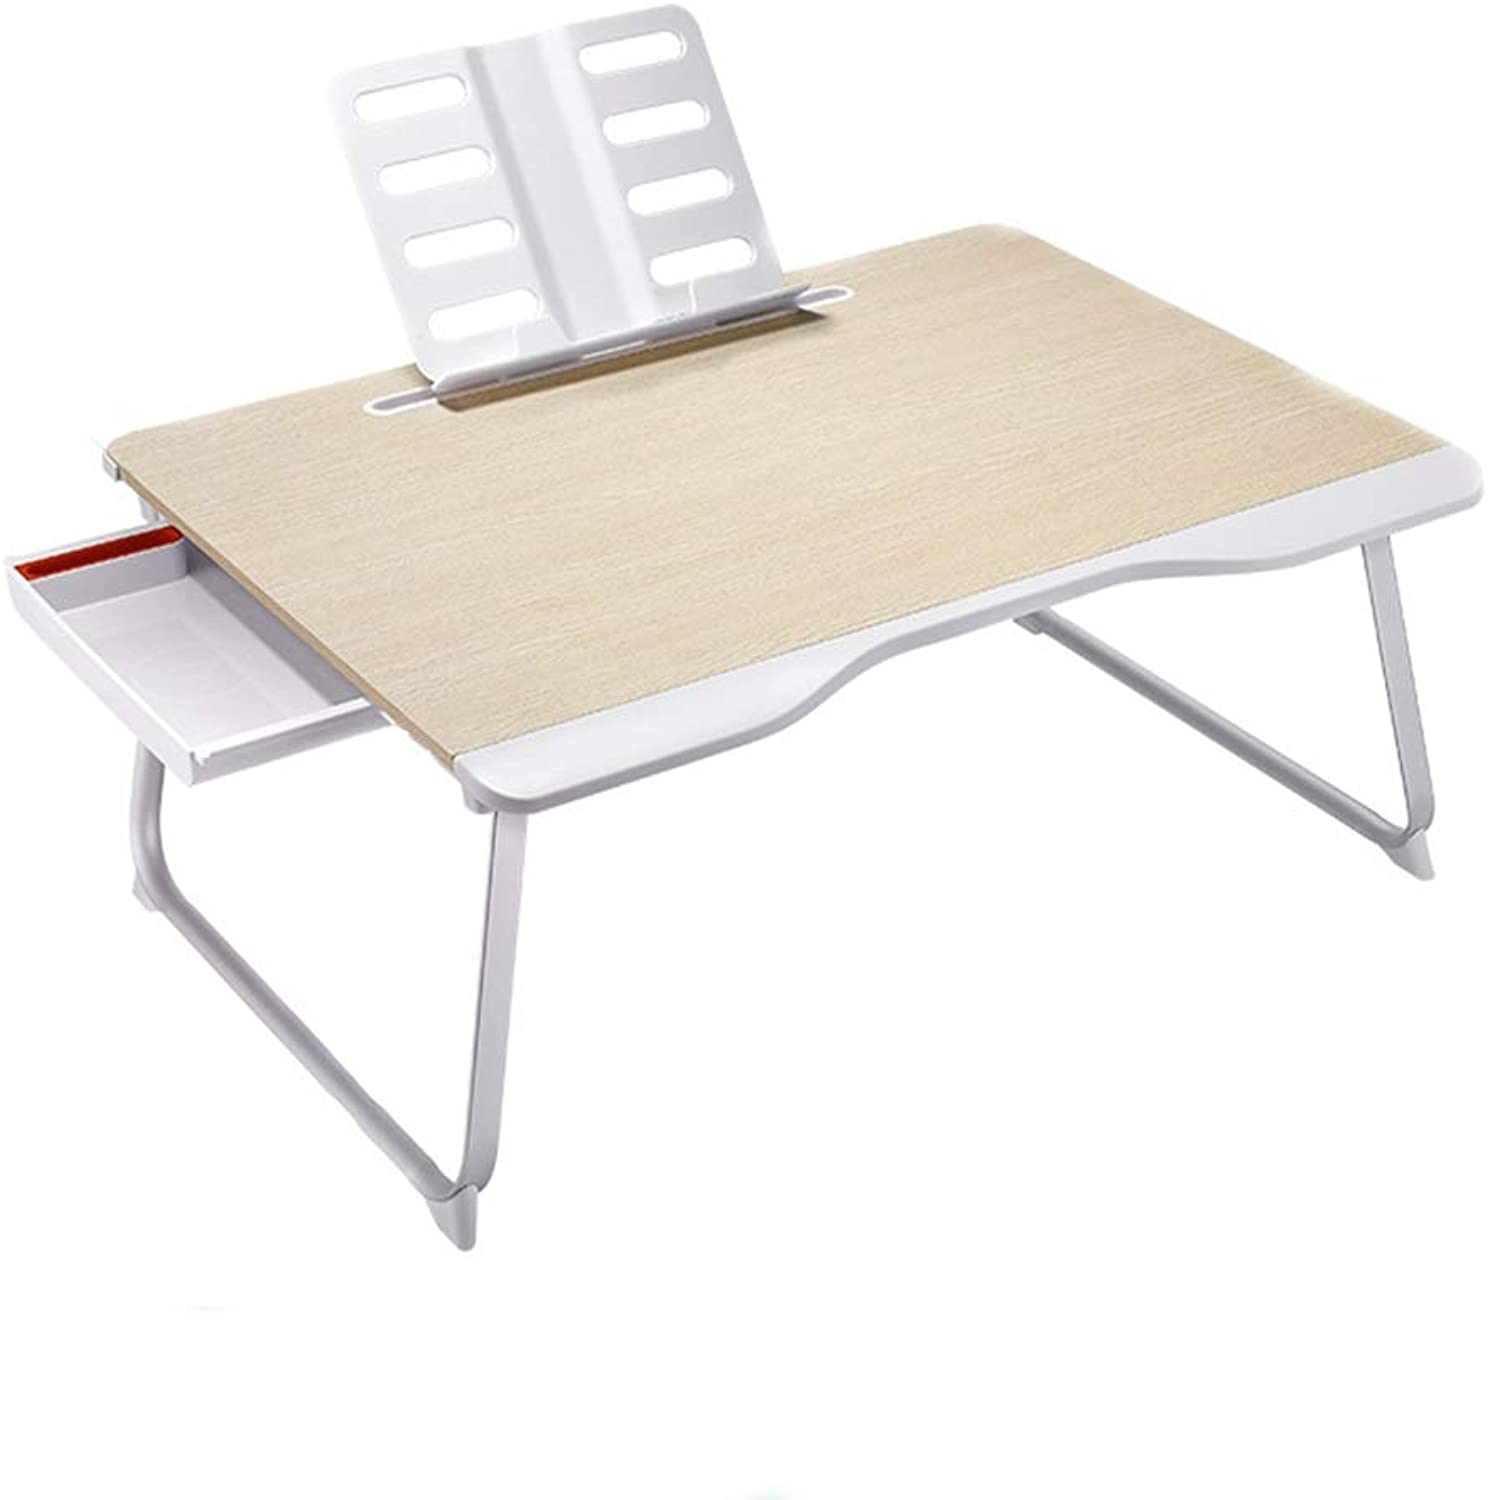 Folding Study Table, Multifunctional Bracket Folding Table, Aluminum Alloy Portable, Suitable for Bed Bedroom Dormitory (Oak Grain)